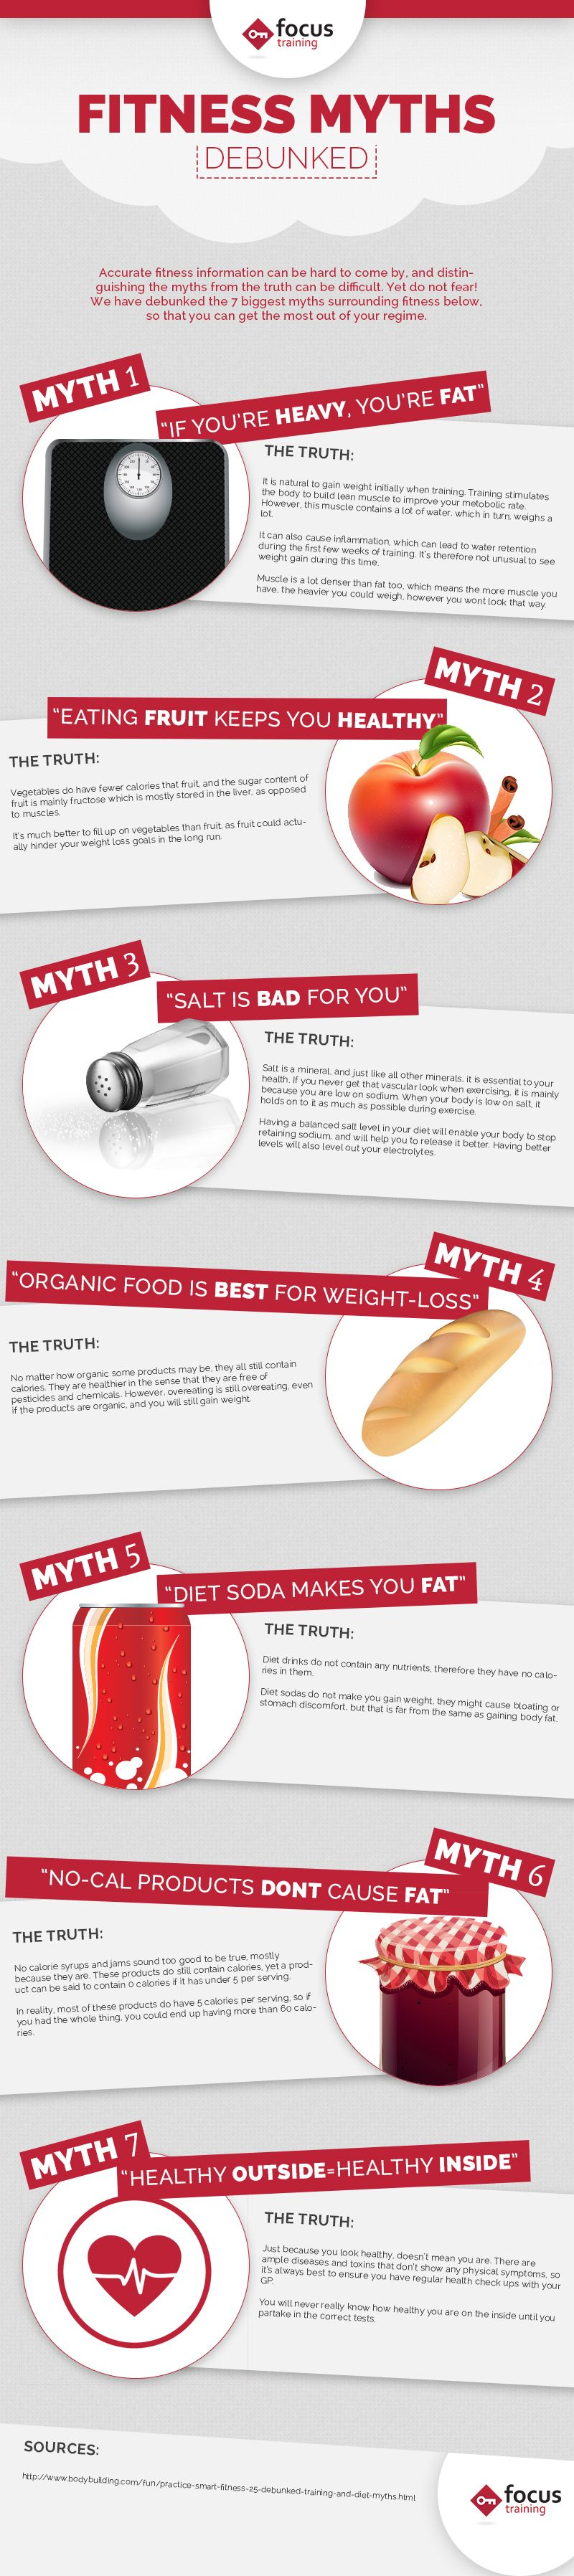 Fitness Myths Debunked #infographic